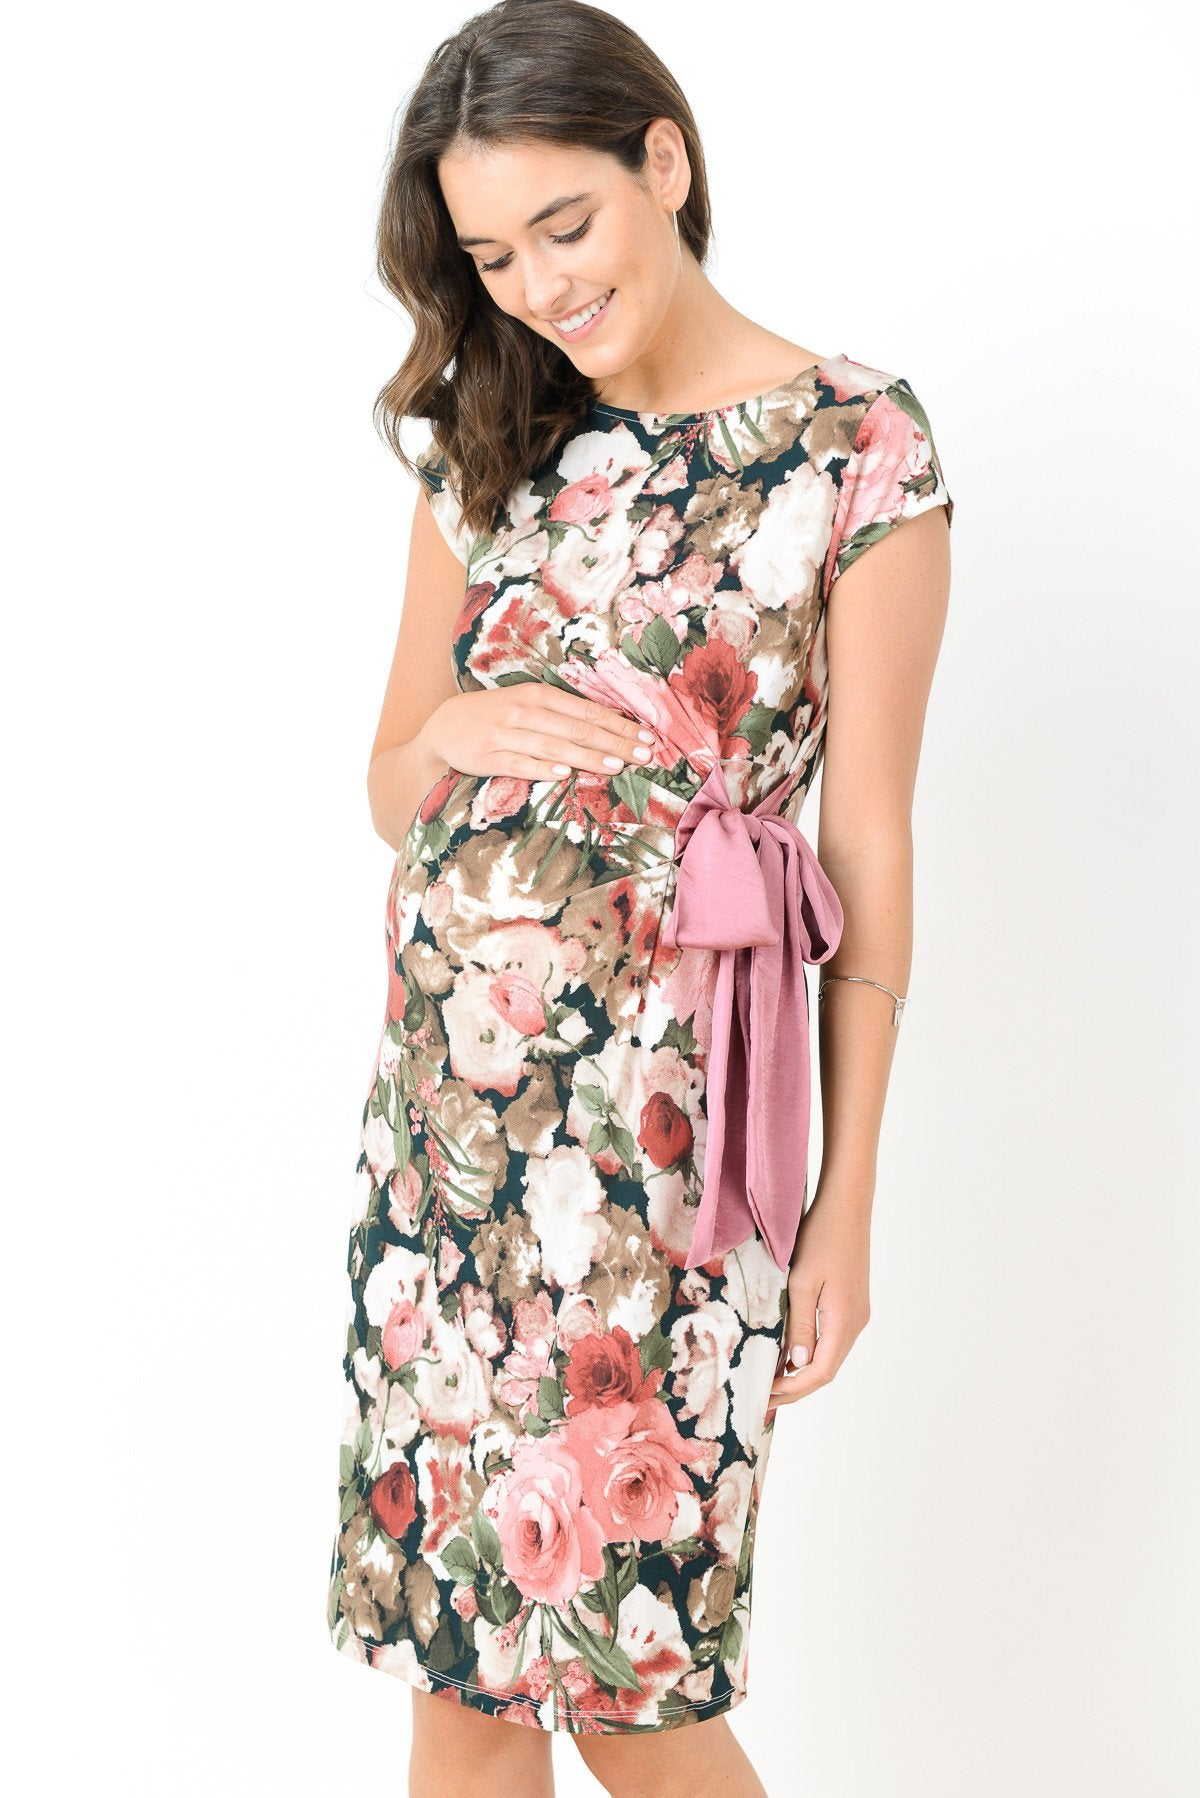 Boat Neck with Ribbon Maternity Dress